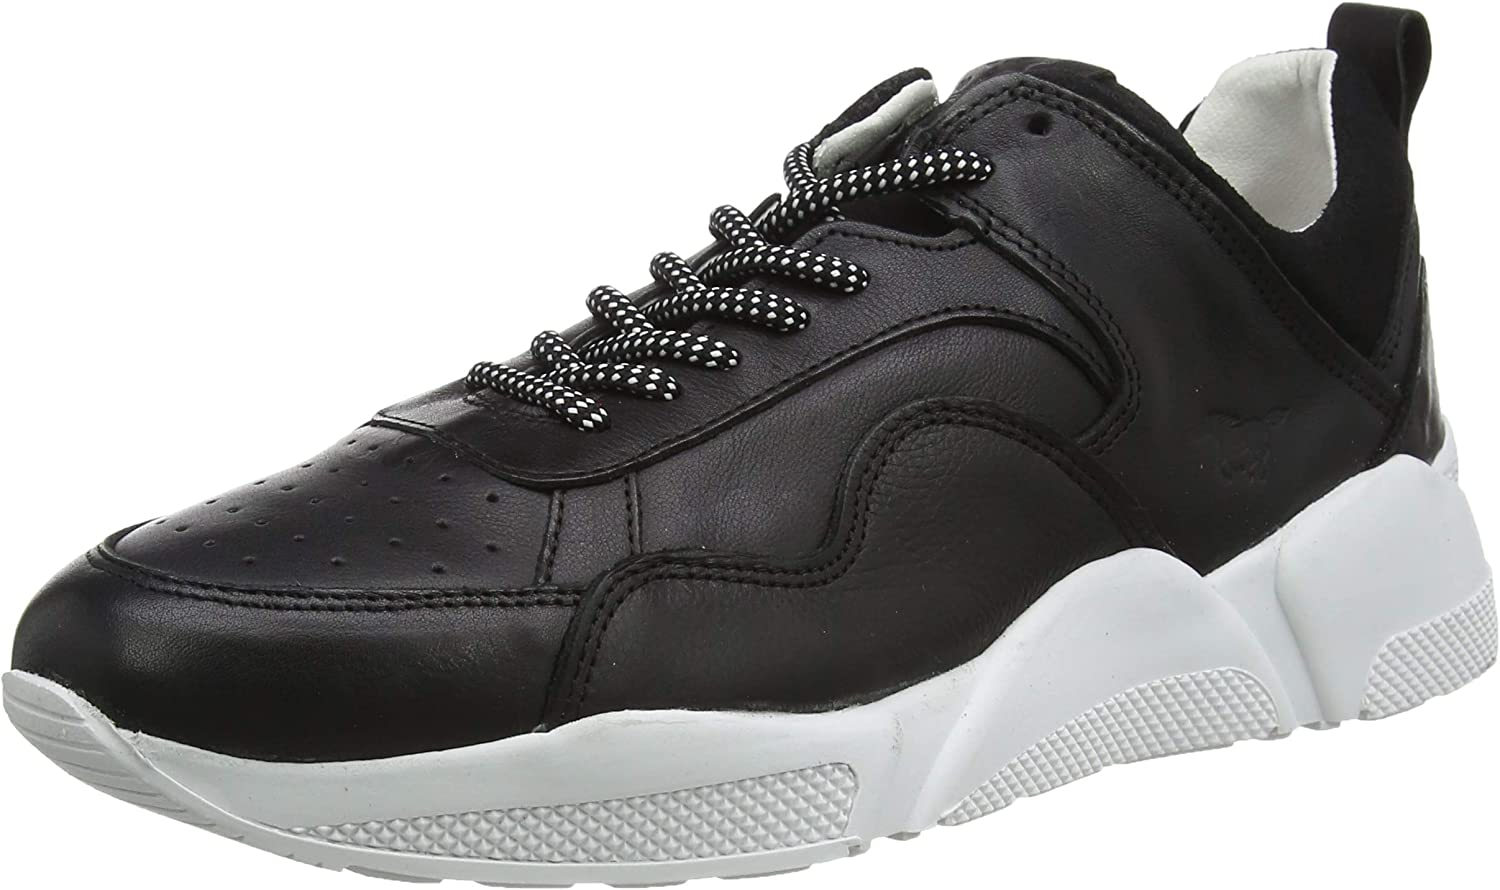 Mustang Men's Low-Top Sneakers San Francisco Mall OFFer